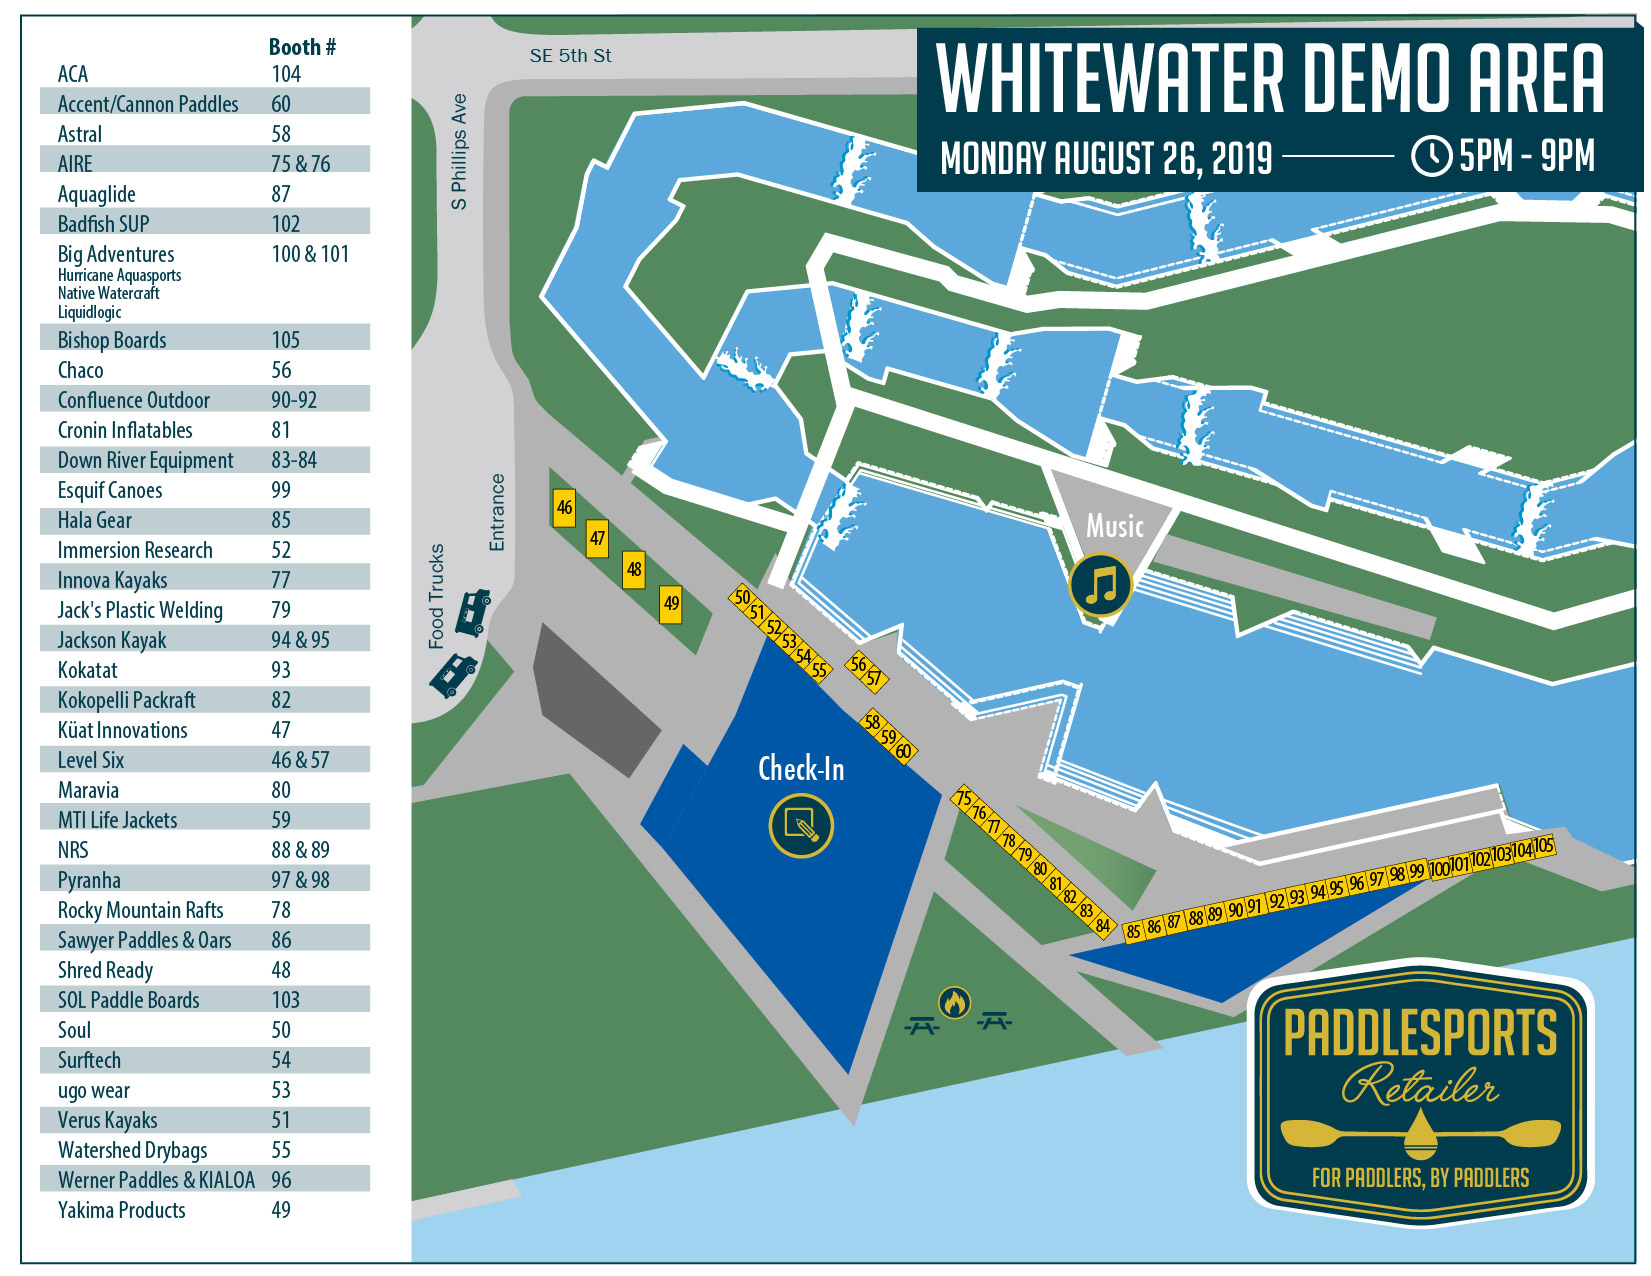 PSR2019-Demo-Day-Whitewater.jpg